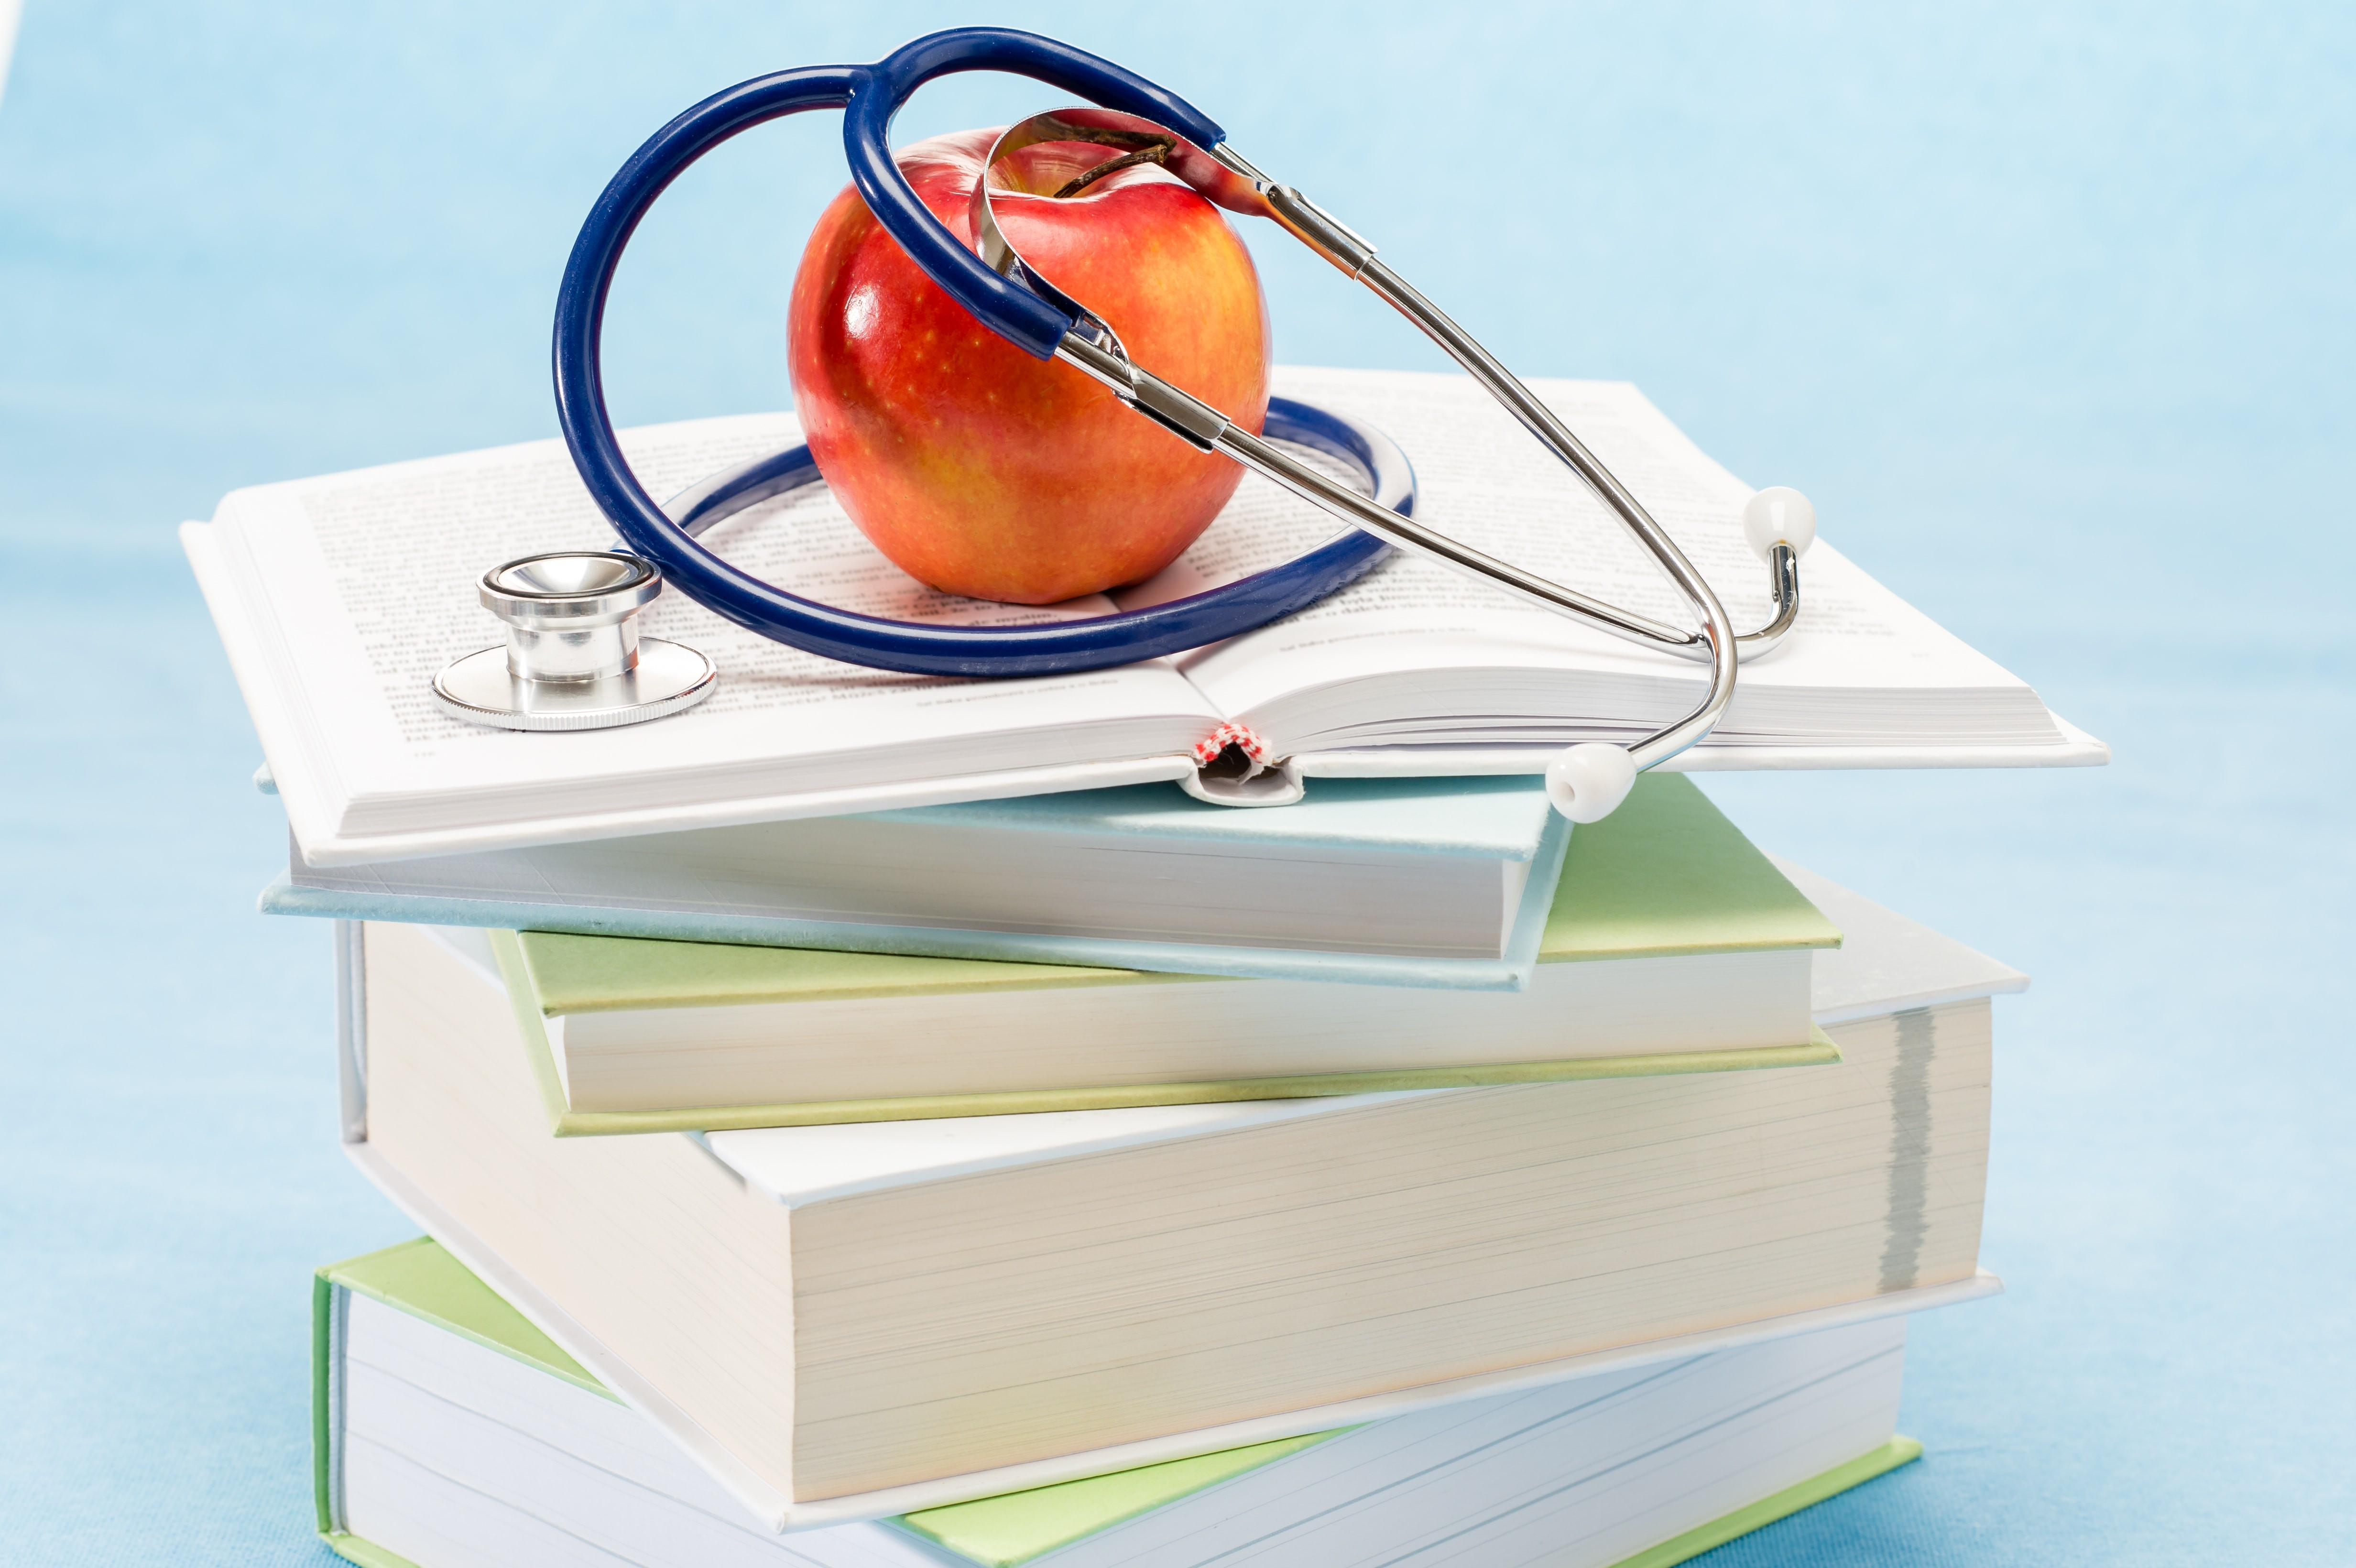 Medical Books stacked with Apple on Top